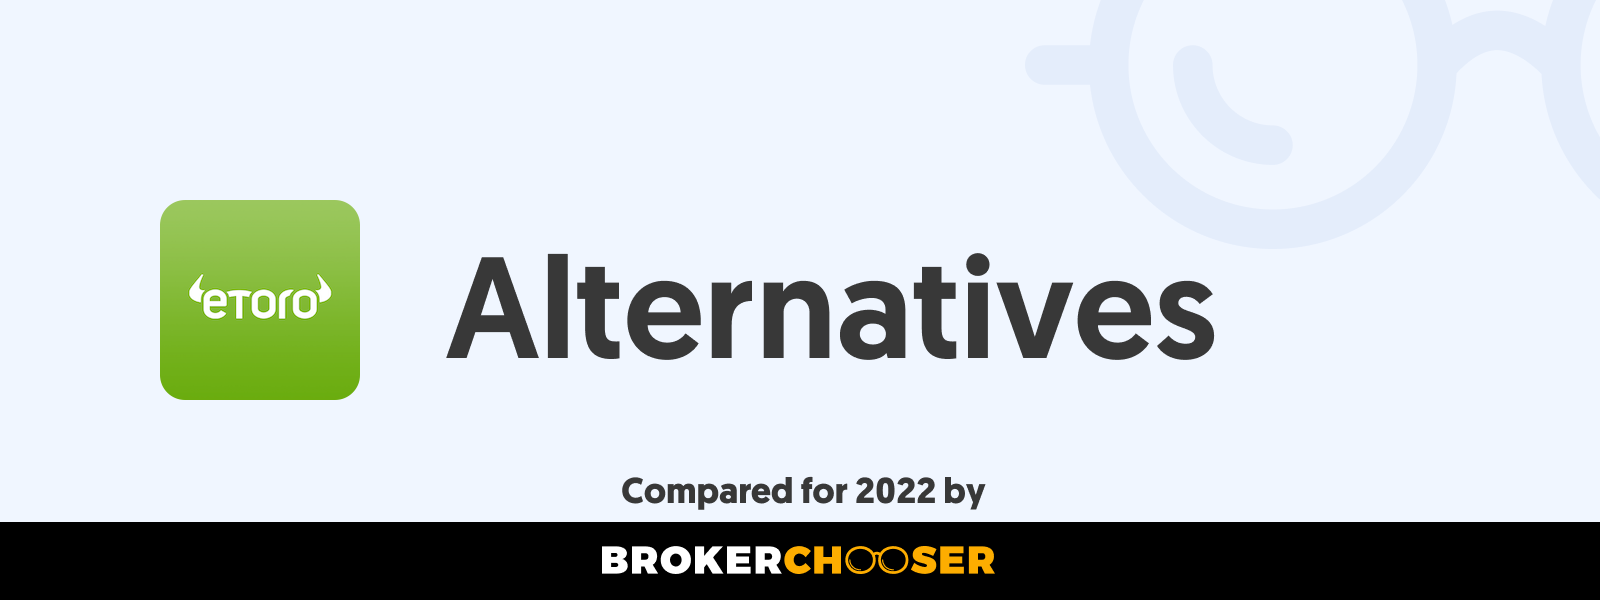 Etoro Alternative